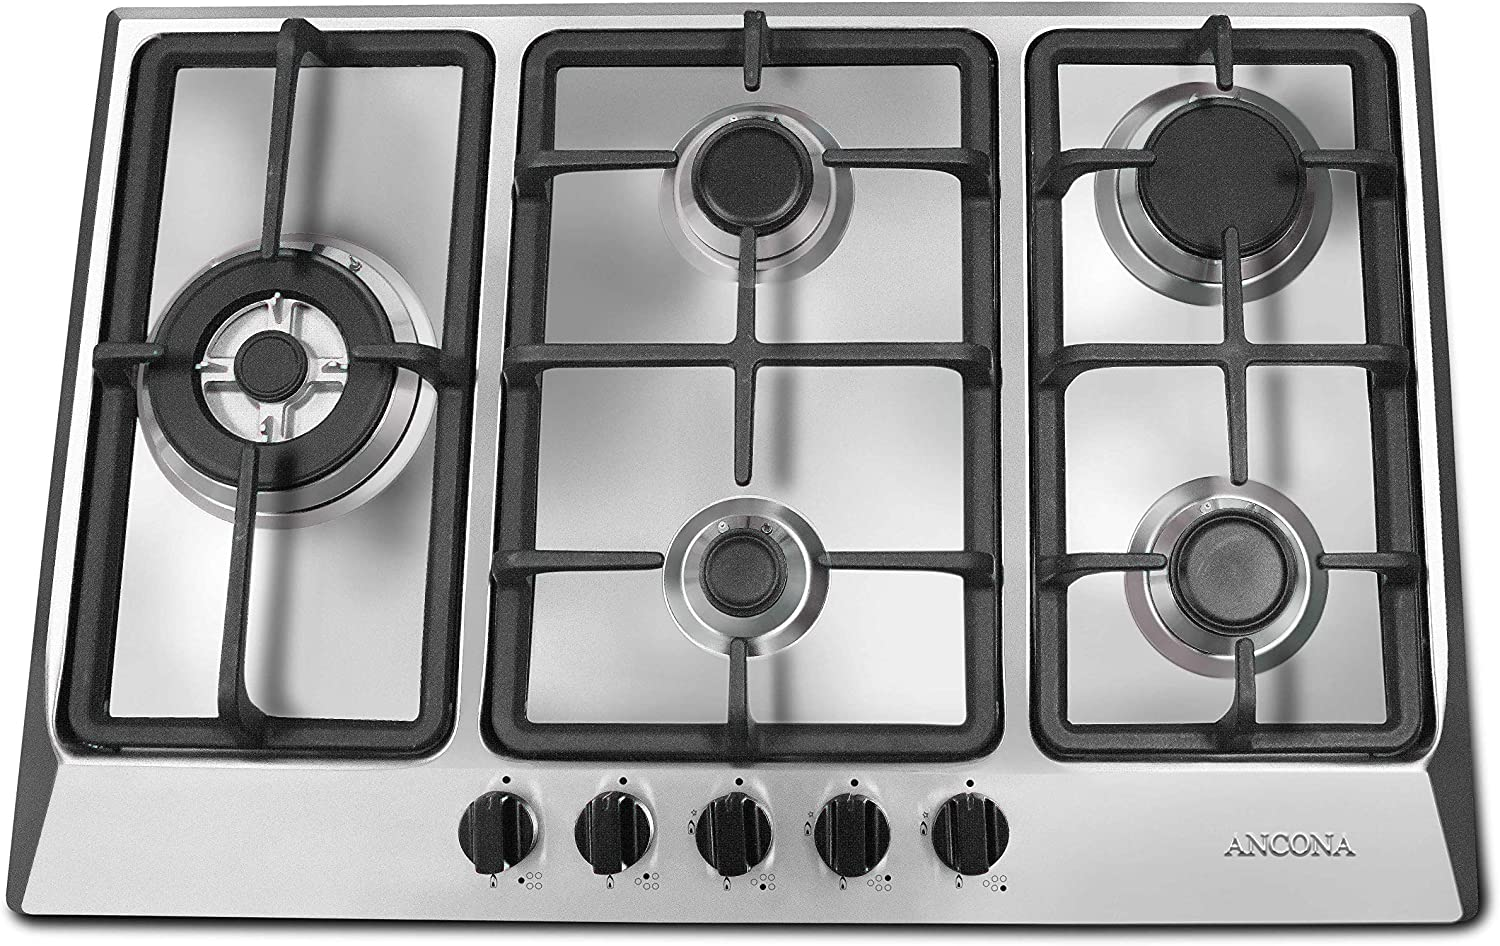 Ancona AN-21009 30″ Stainless Steel Gas Cooktop